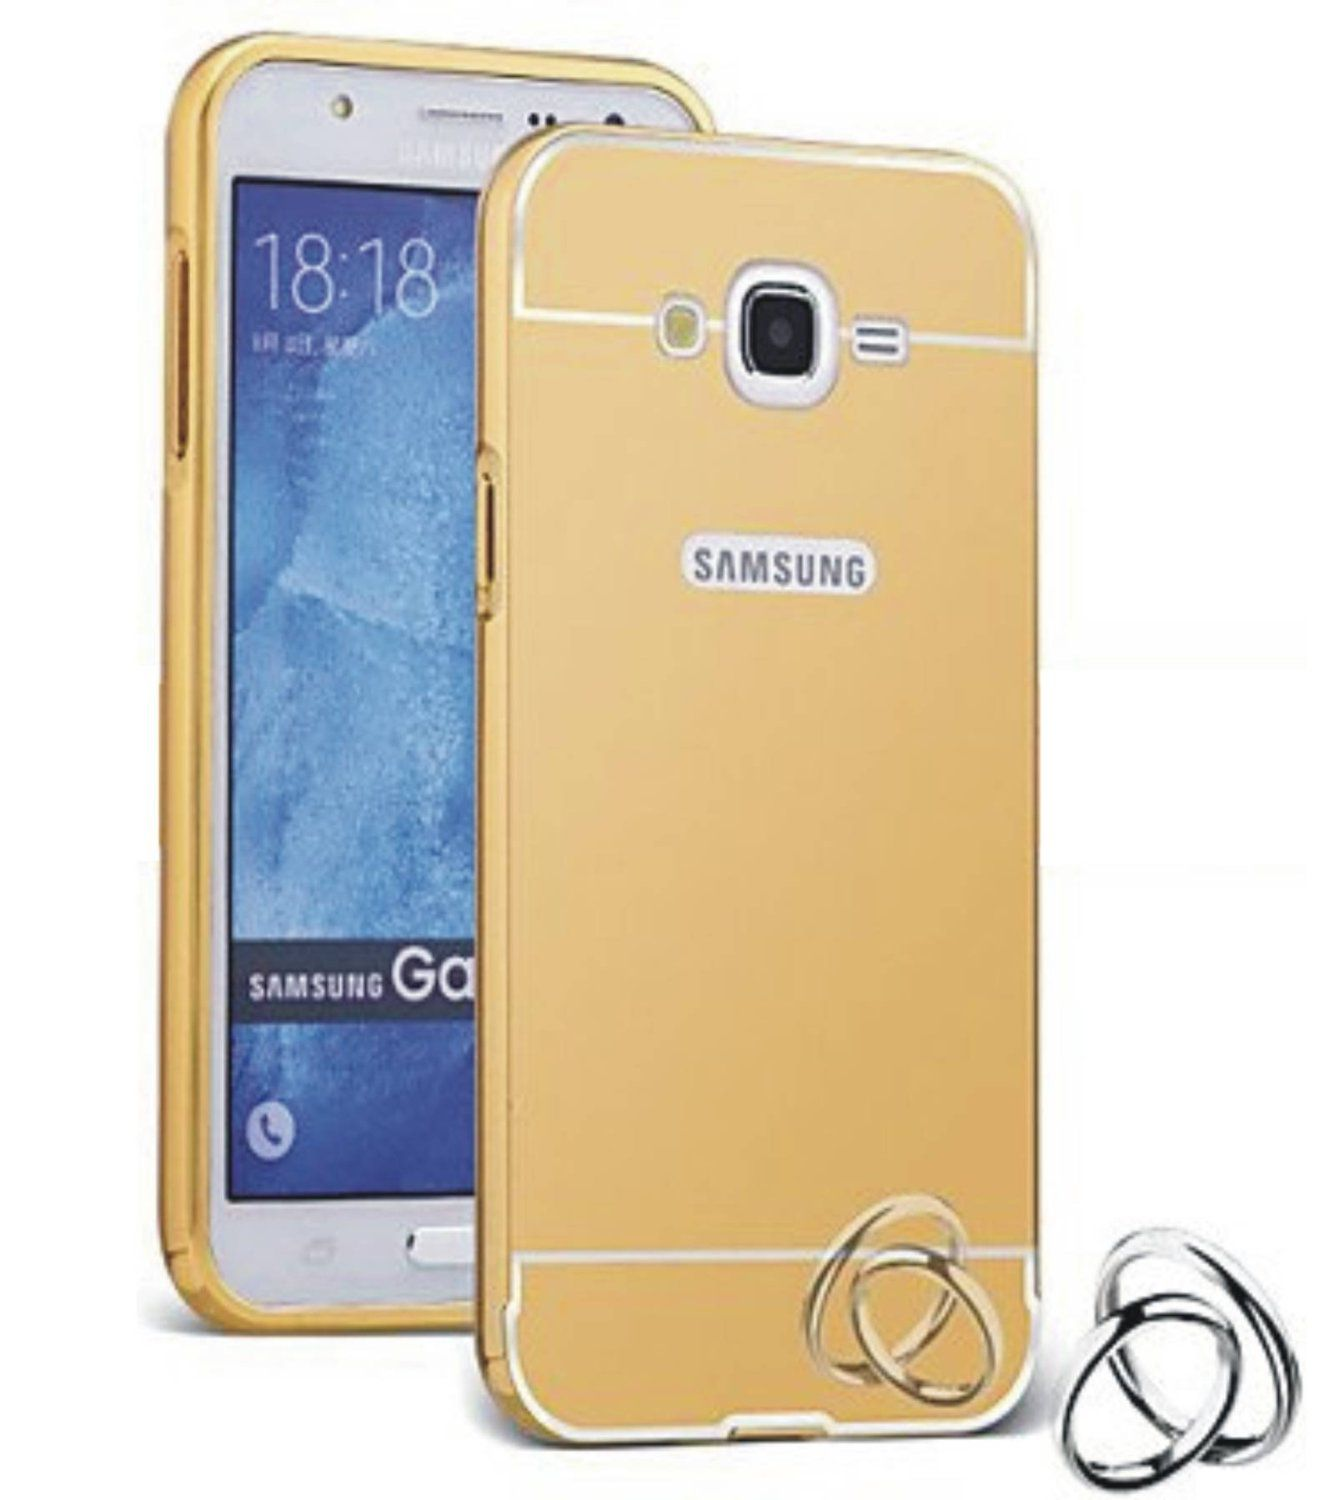 Style Crome Metal Bumper + Acrylic Mirror Back Cover Case For Samsung J5 Gold + Flexible Portable Thumb OK Stand